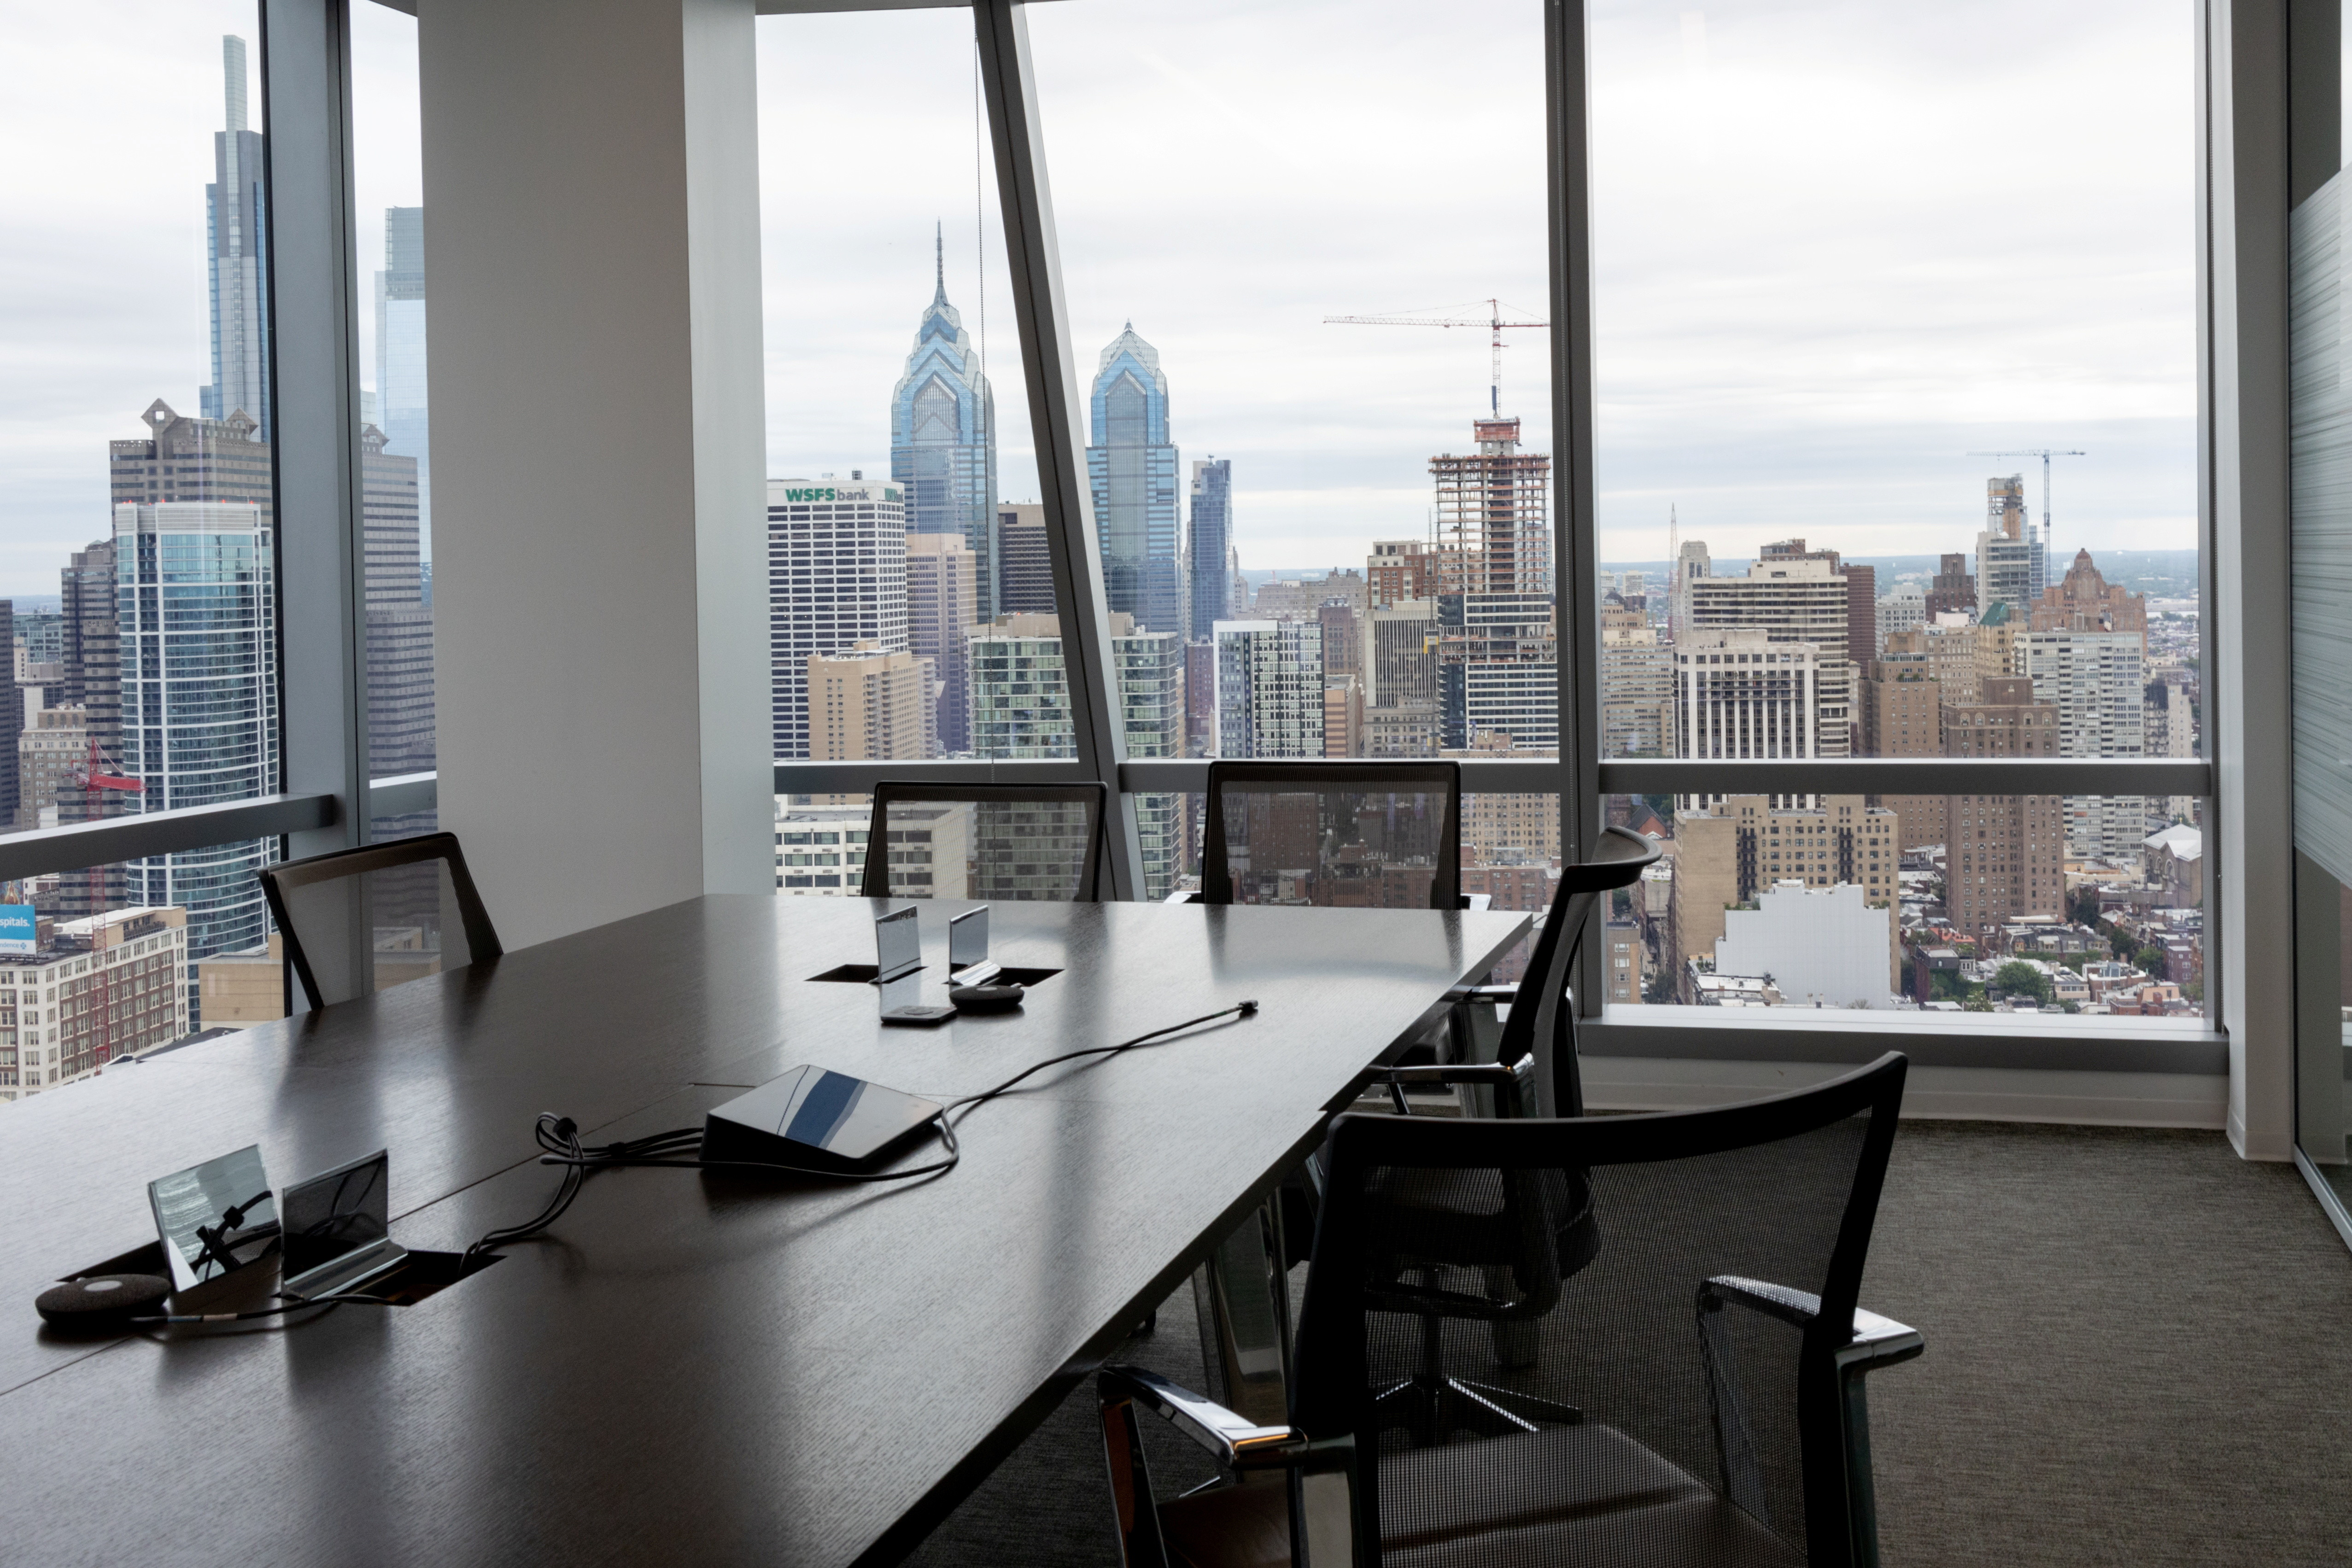 a picture of an empty office conference room representing the transition to working from home